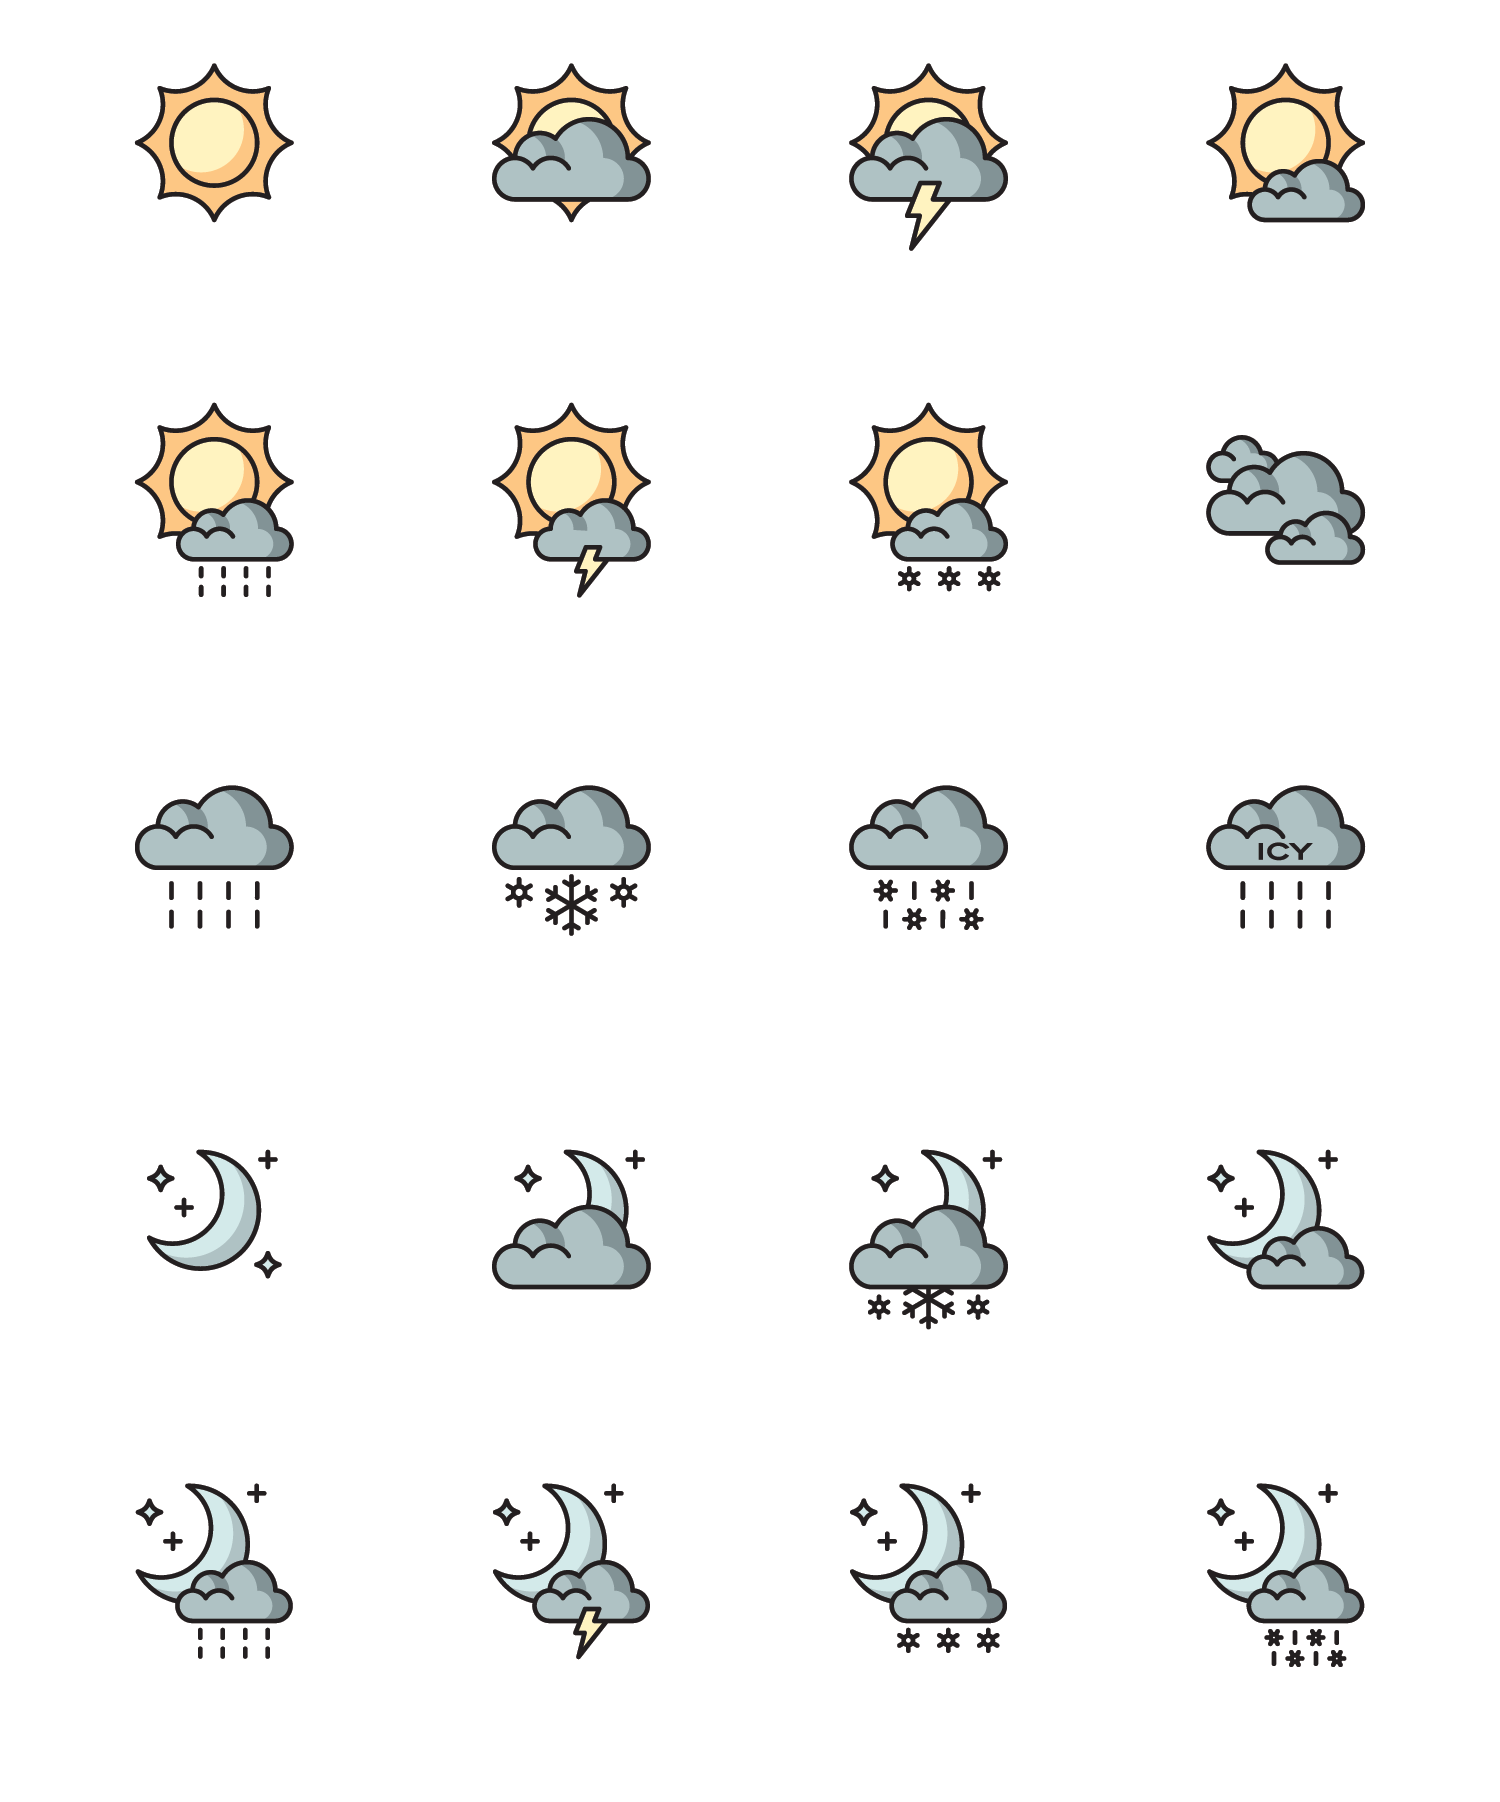 stein-star-tibune-weather-icons.png